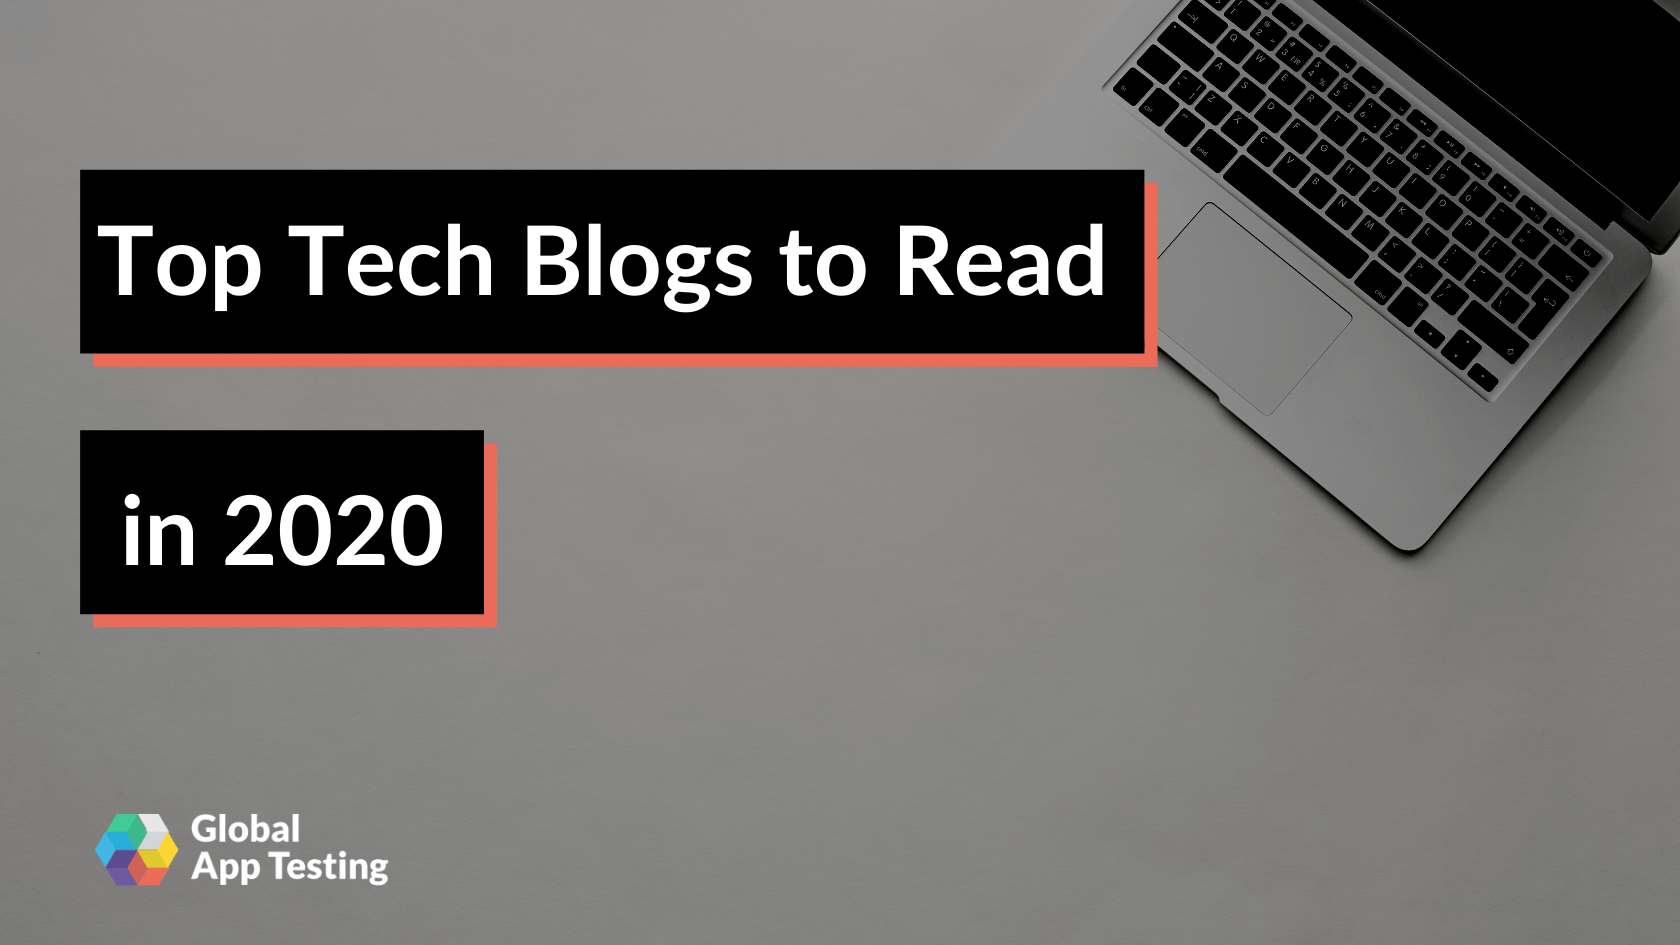 Top Tech Blogs to Read in 2020